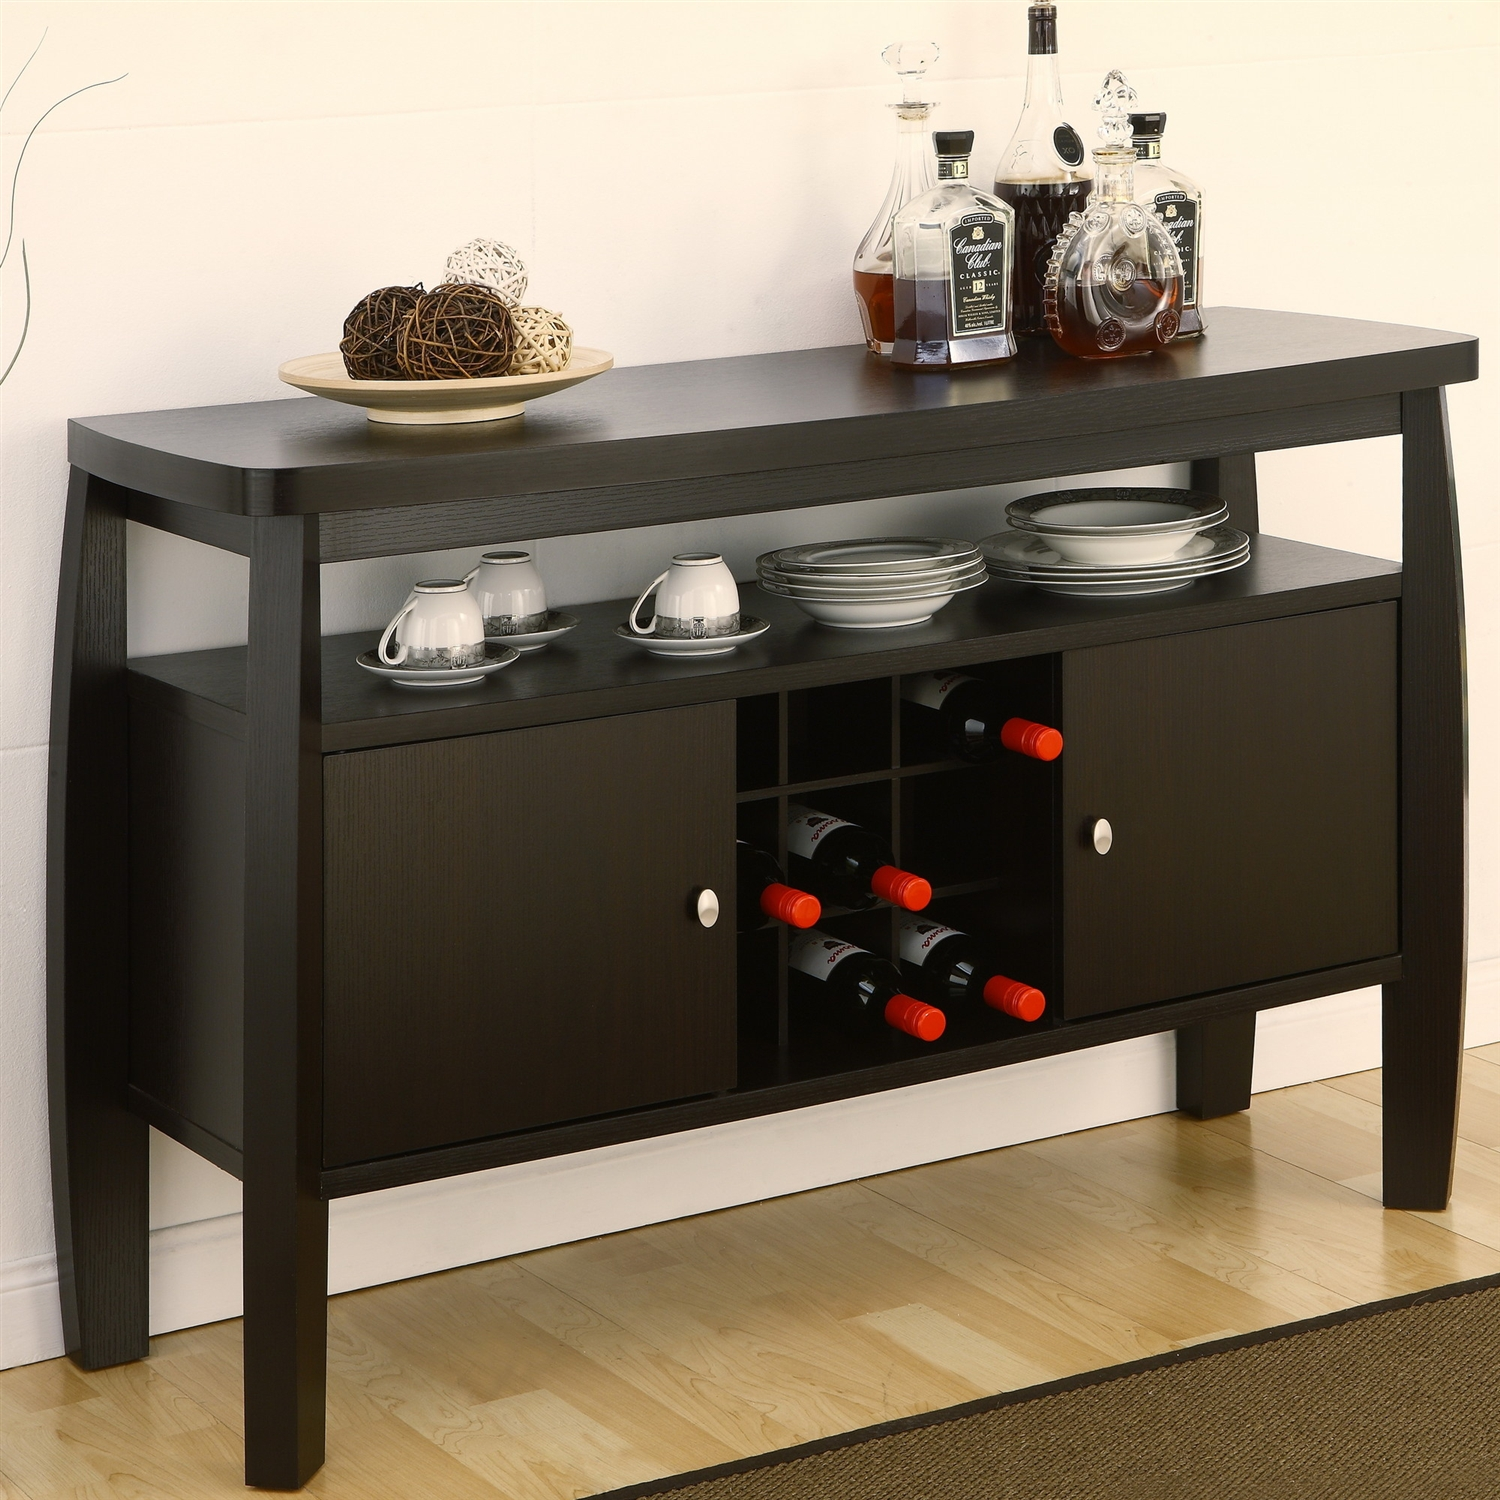 Modern Dining Room Sideboard Buffet Server Console Table. Modern Dining Room Sideboard Buffet Server Console Table